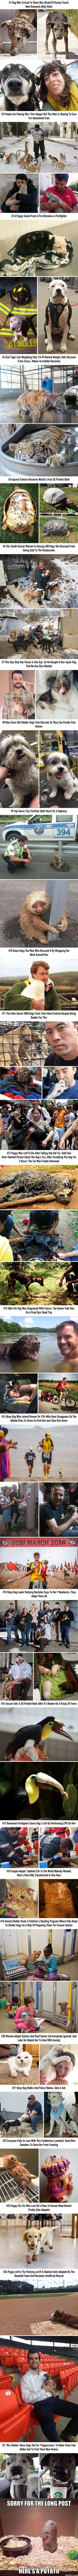 25 Animal Stories That Restored Our Faith In Humanity In 2016